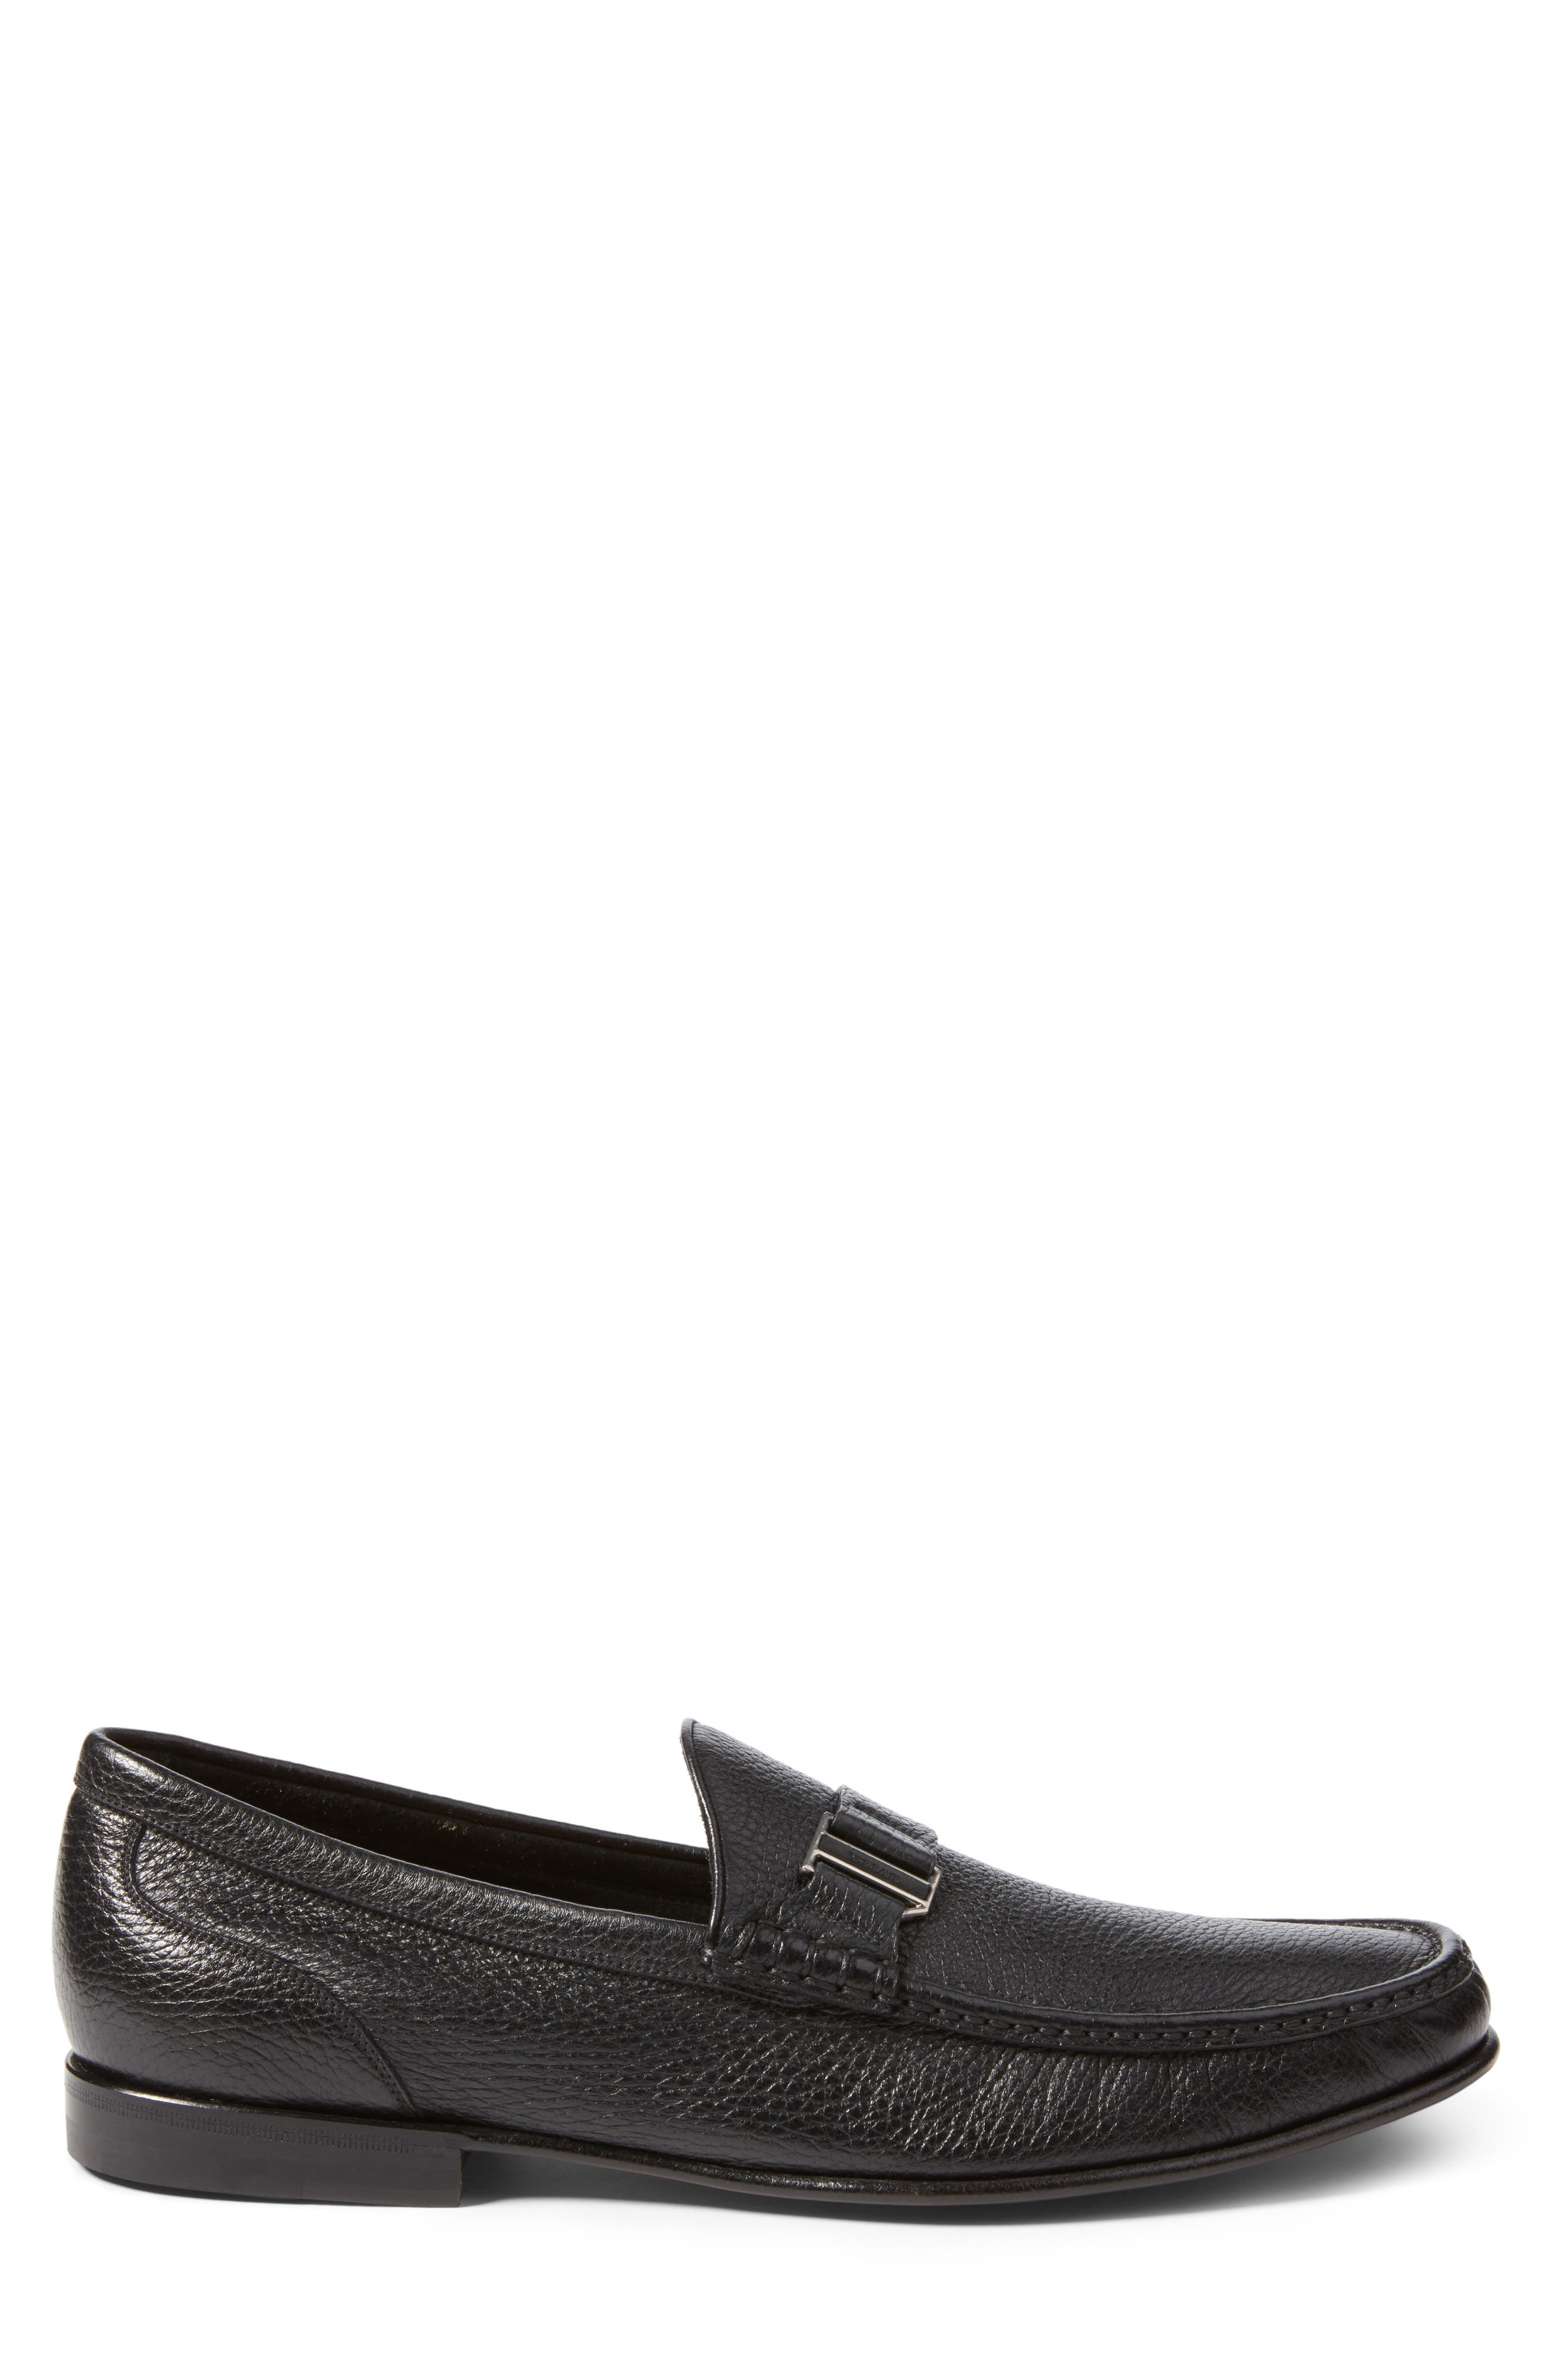 Suver Loafer,                             Alternate thumbnail 3, color,                             001